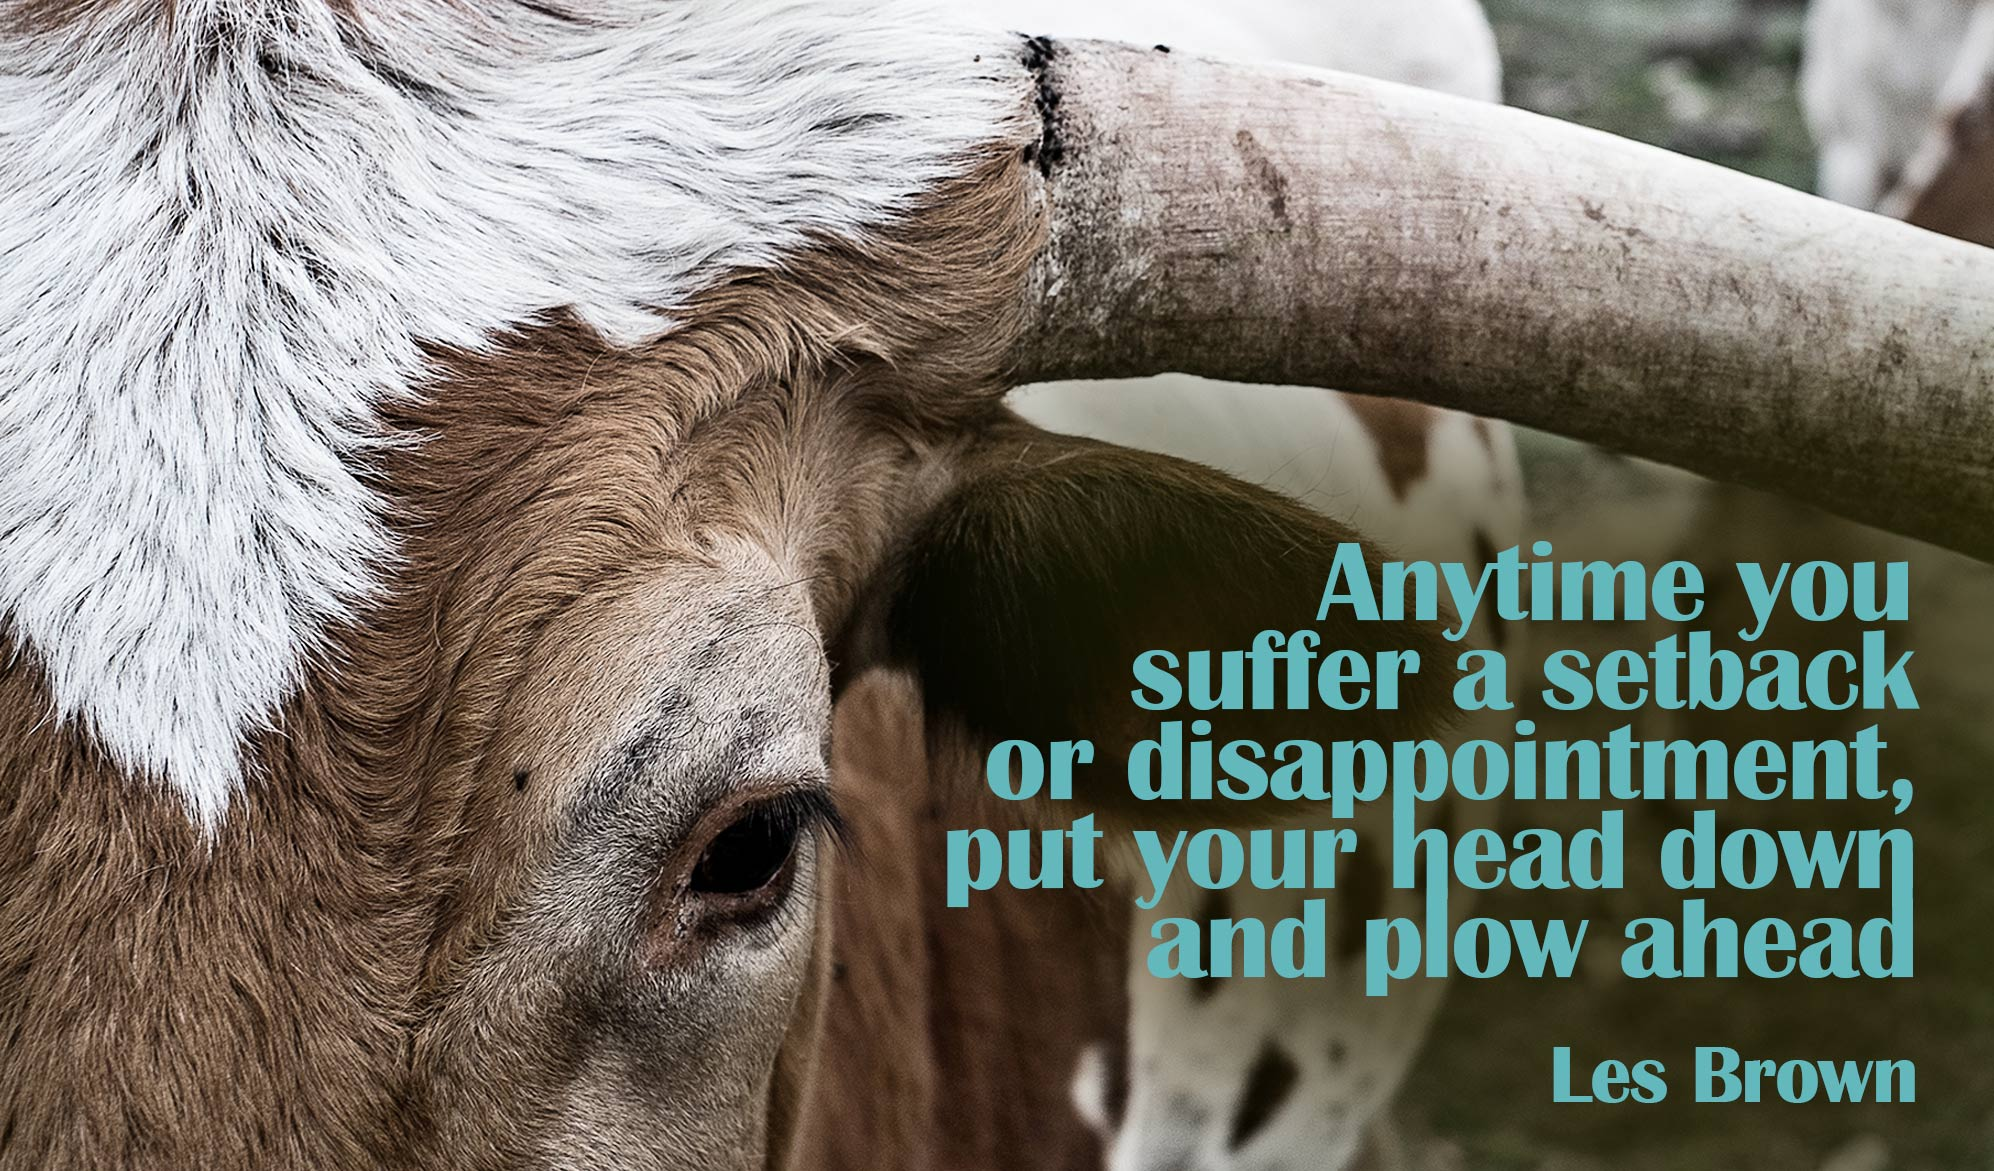 daily inspirational quote image: close up of a bull